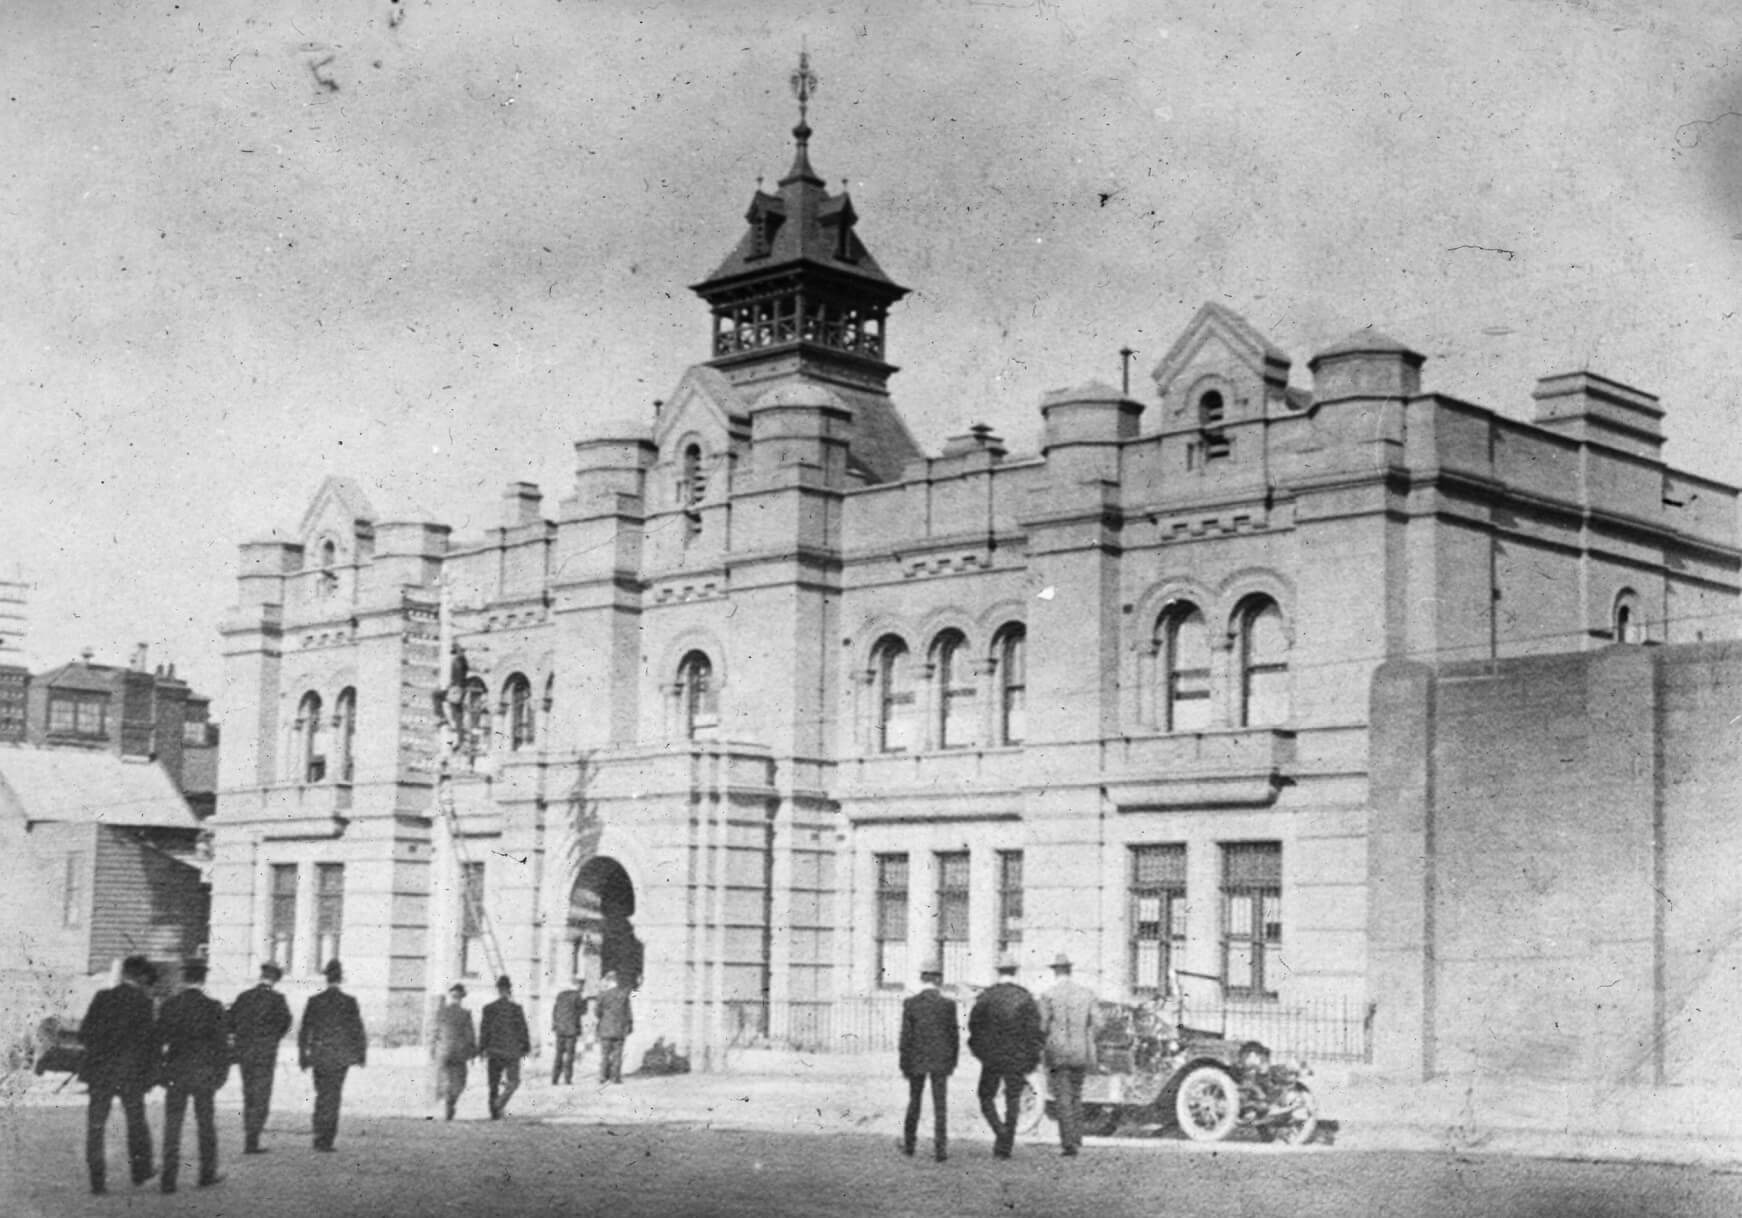 The 'new' City Watch House in 1909. State Library of Victoria image.